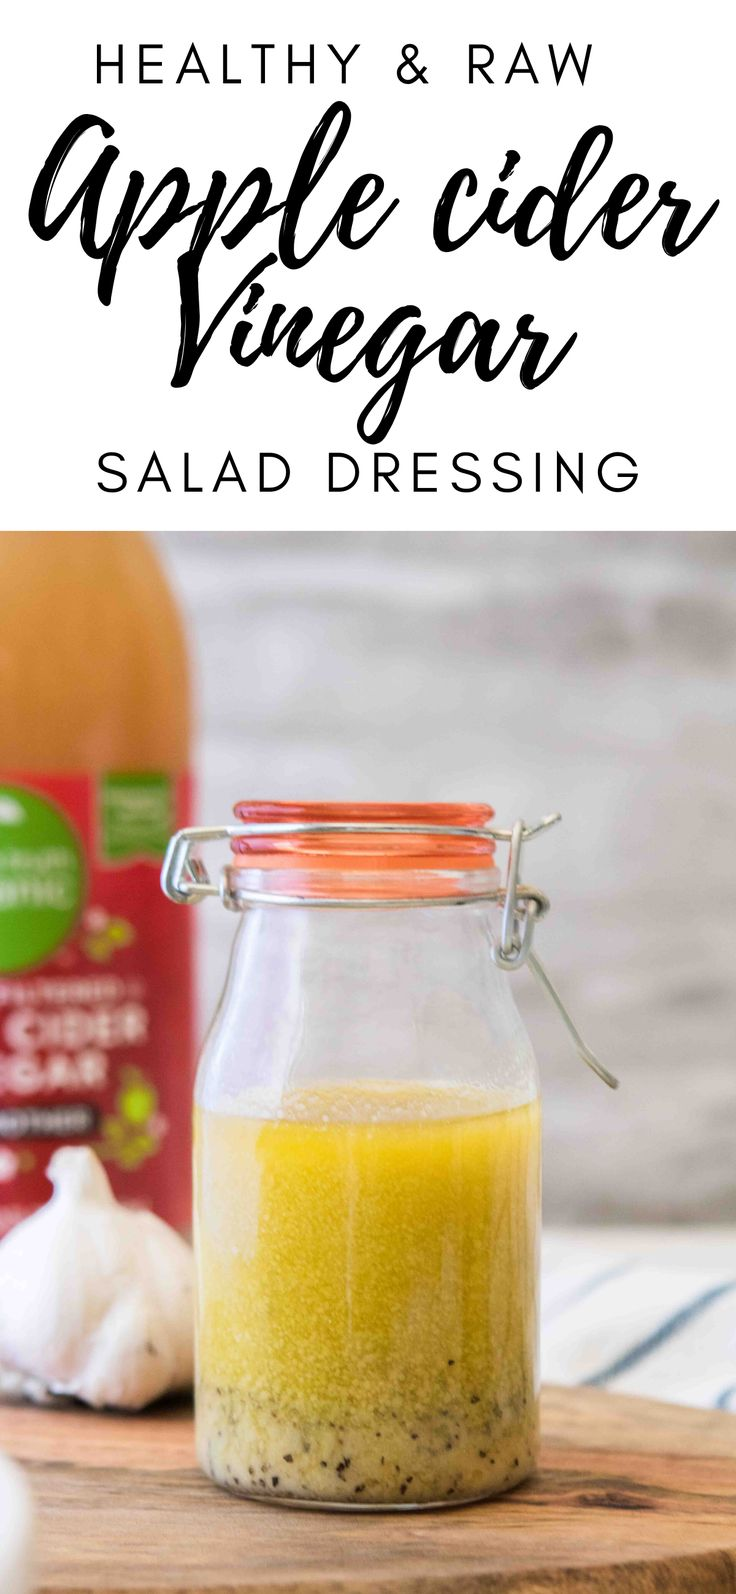 This healthy apple cider vinegar dressing is an easy and healthy kitchen staple in my house. It will make your salad tas…